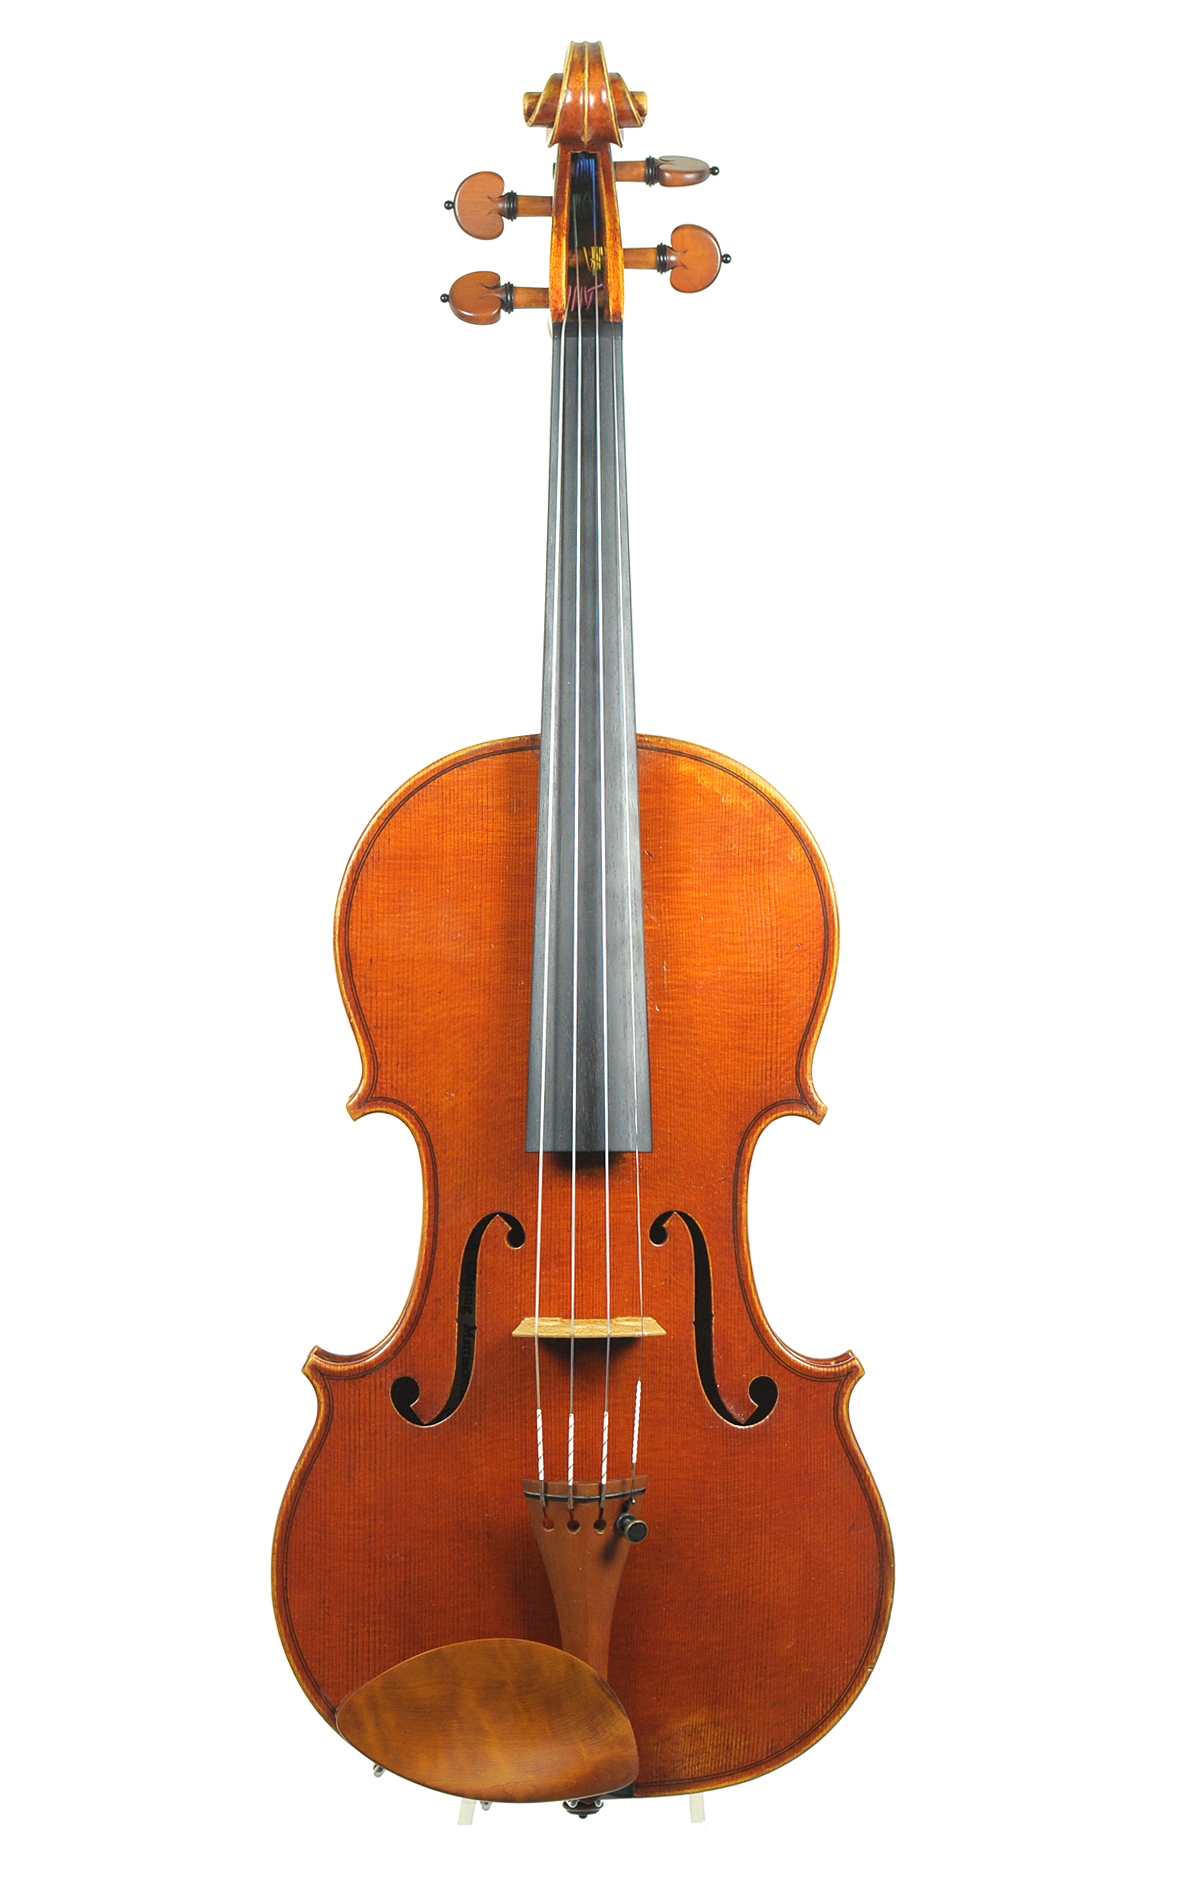 Elite master violin by Christoph Götting, 2010